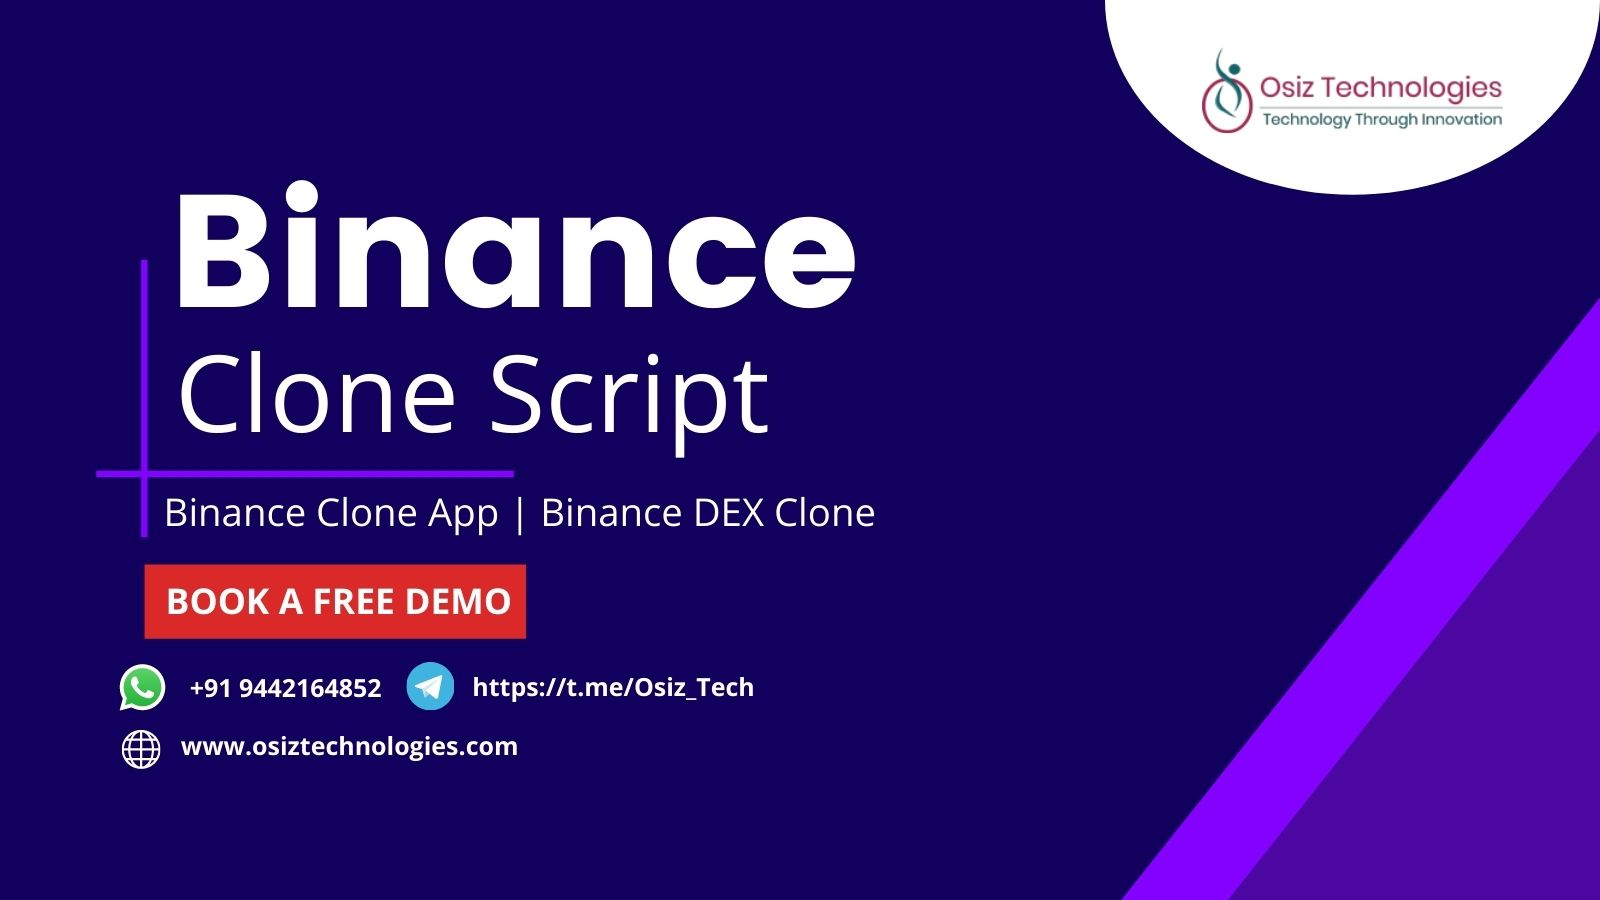 Binance Clone Script | Binance DEX Clone Software | Binance Website Clone